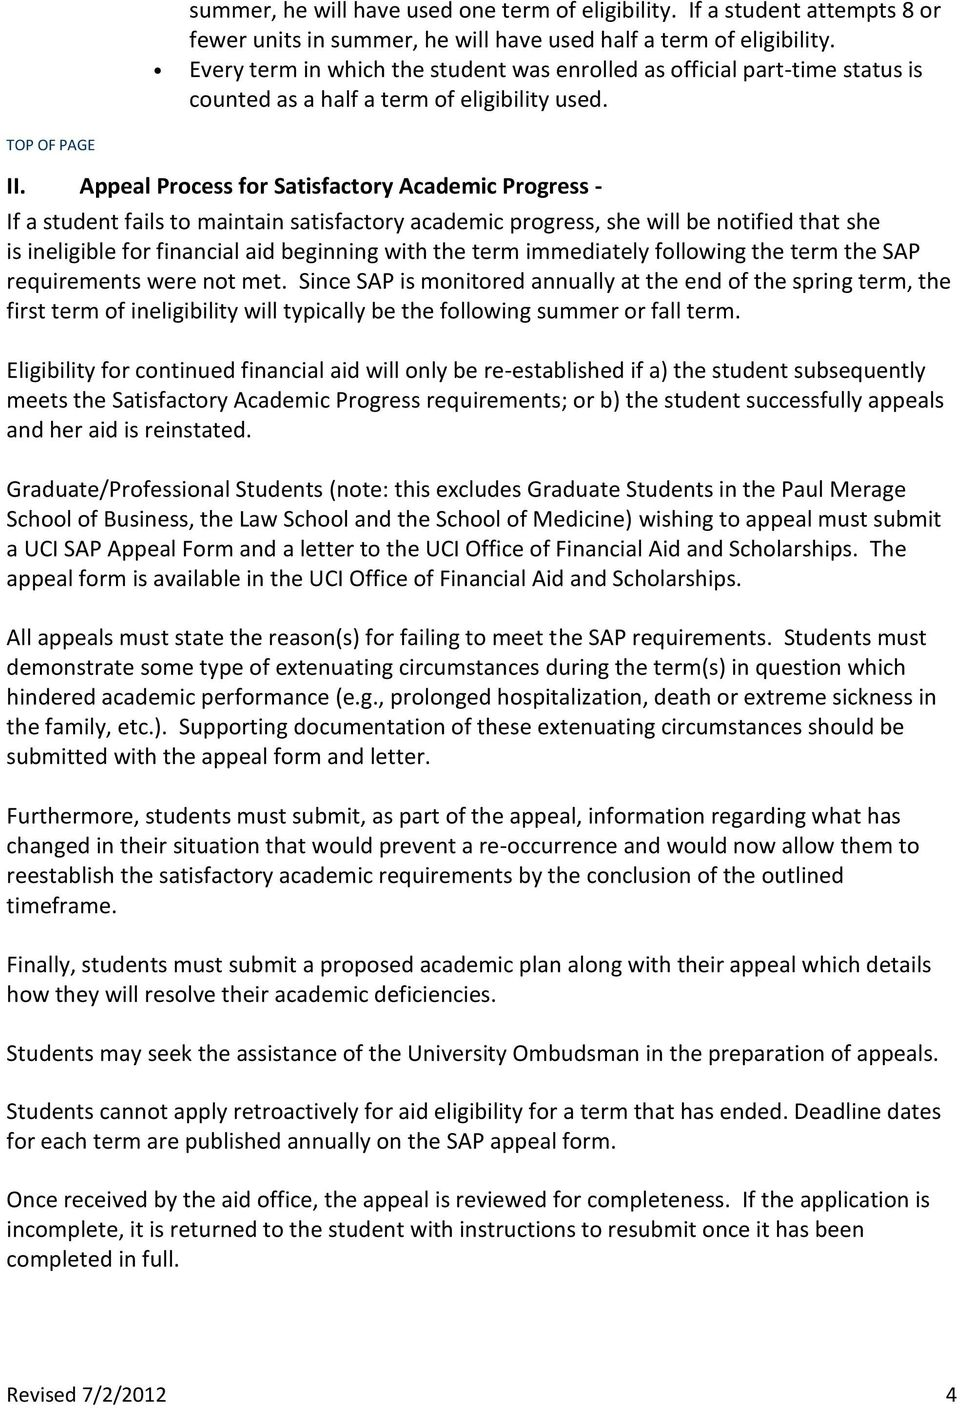 Appeal Process for Satisfactory Academic Progress - If a student fails to maintain satisfactory academic progress, she will be notified that she is ineligible for financial aid beginning with the